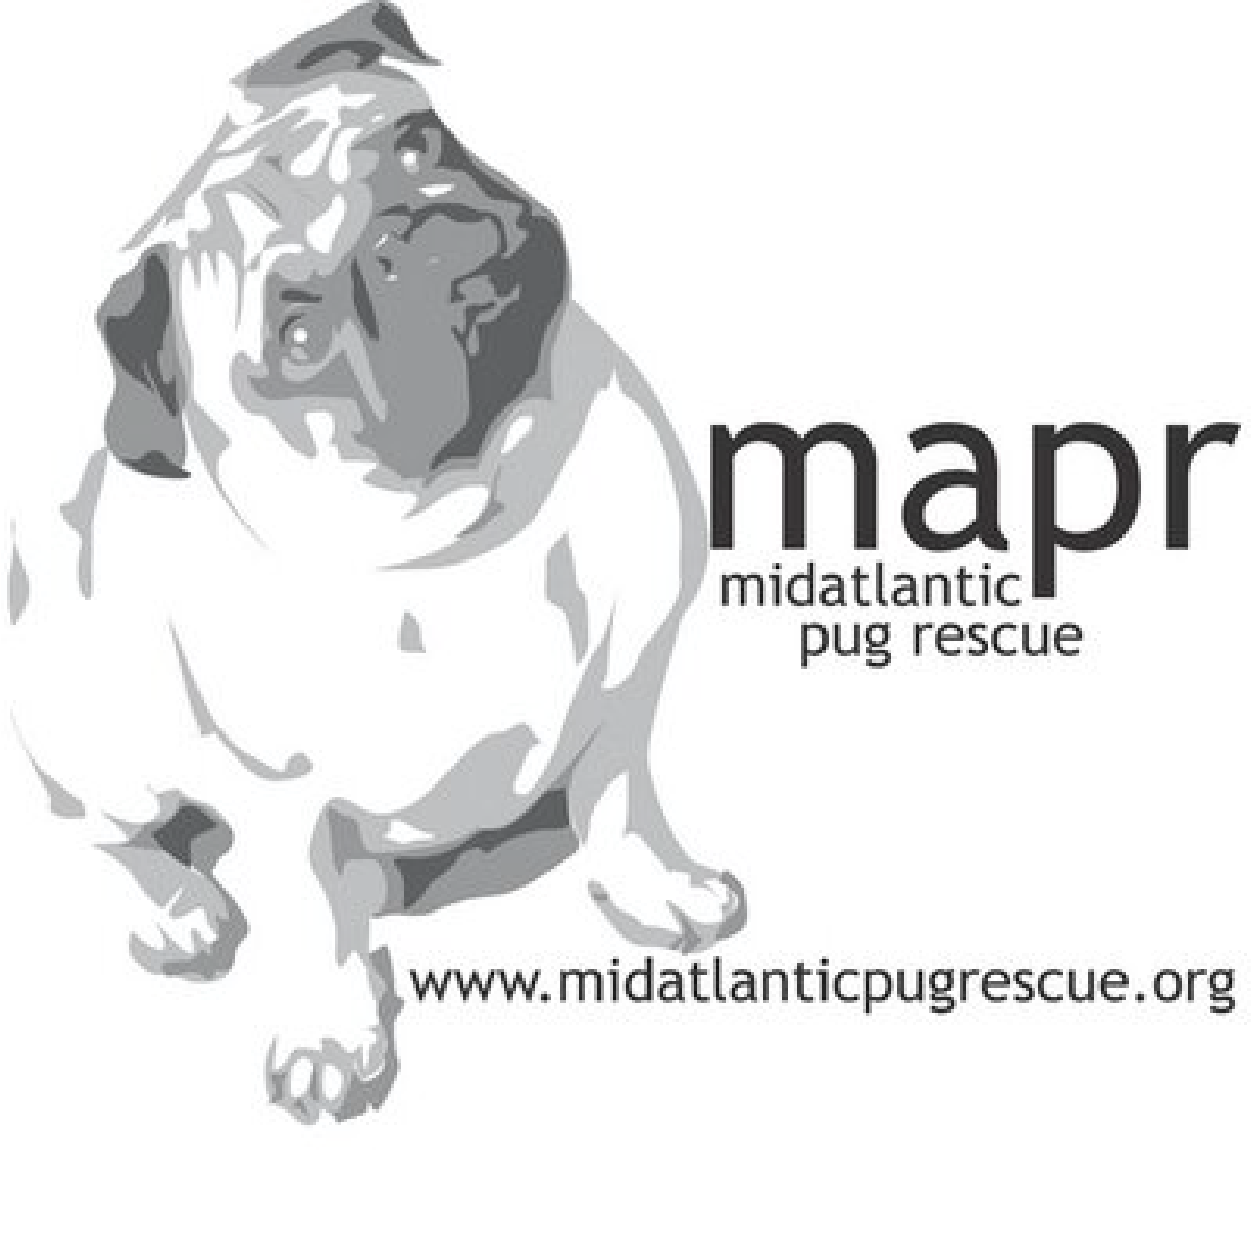 Mid Atlantic Pug Rescue is a nonprofit organization, dedicated to providing for the short and long term needs of abandoned or surrendered pugs. -